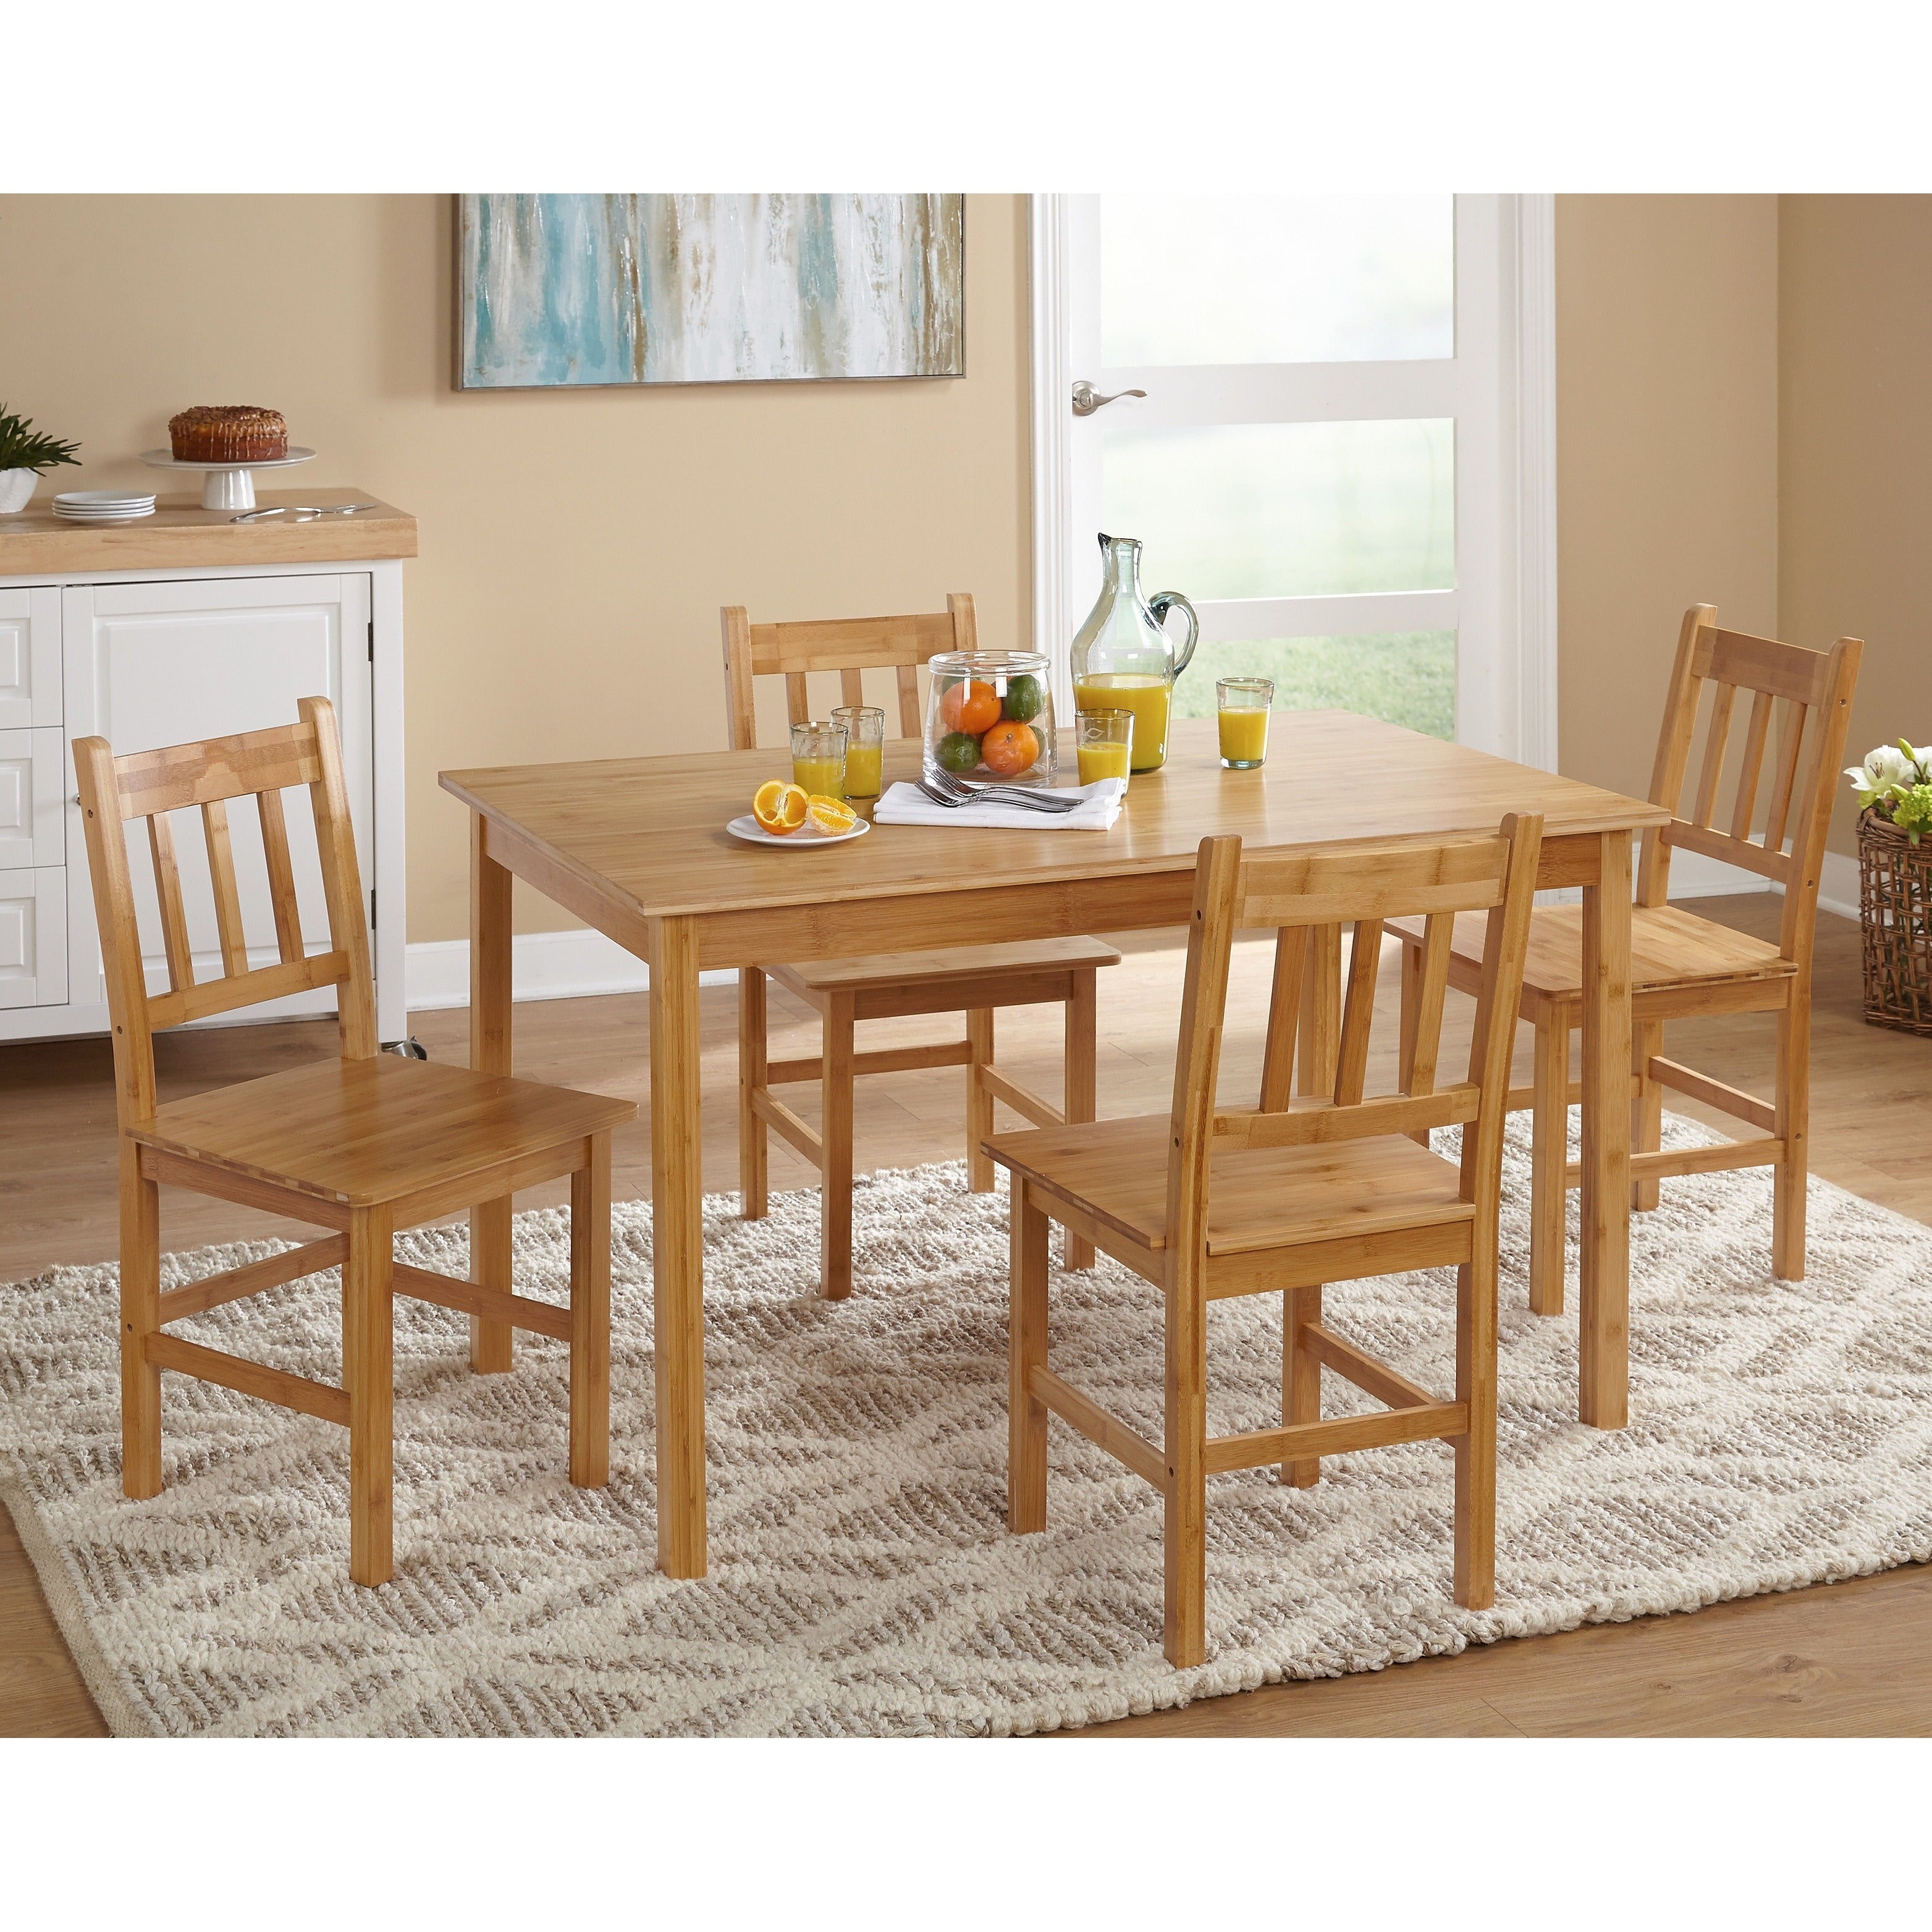 Bamboo Kitchen Table Simple living bamboo 5 piece dining set free shipping today simple living bamboo 5 piece dining set free shipping today overstock 13494705 workwithnaturefo